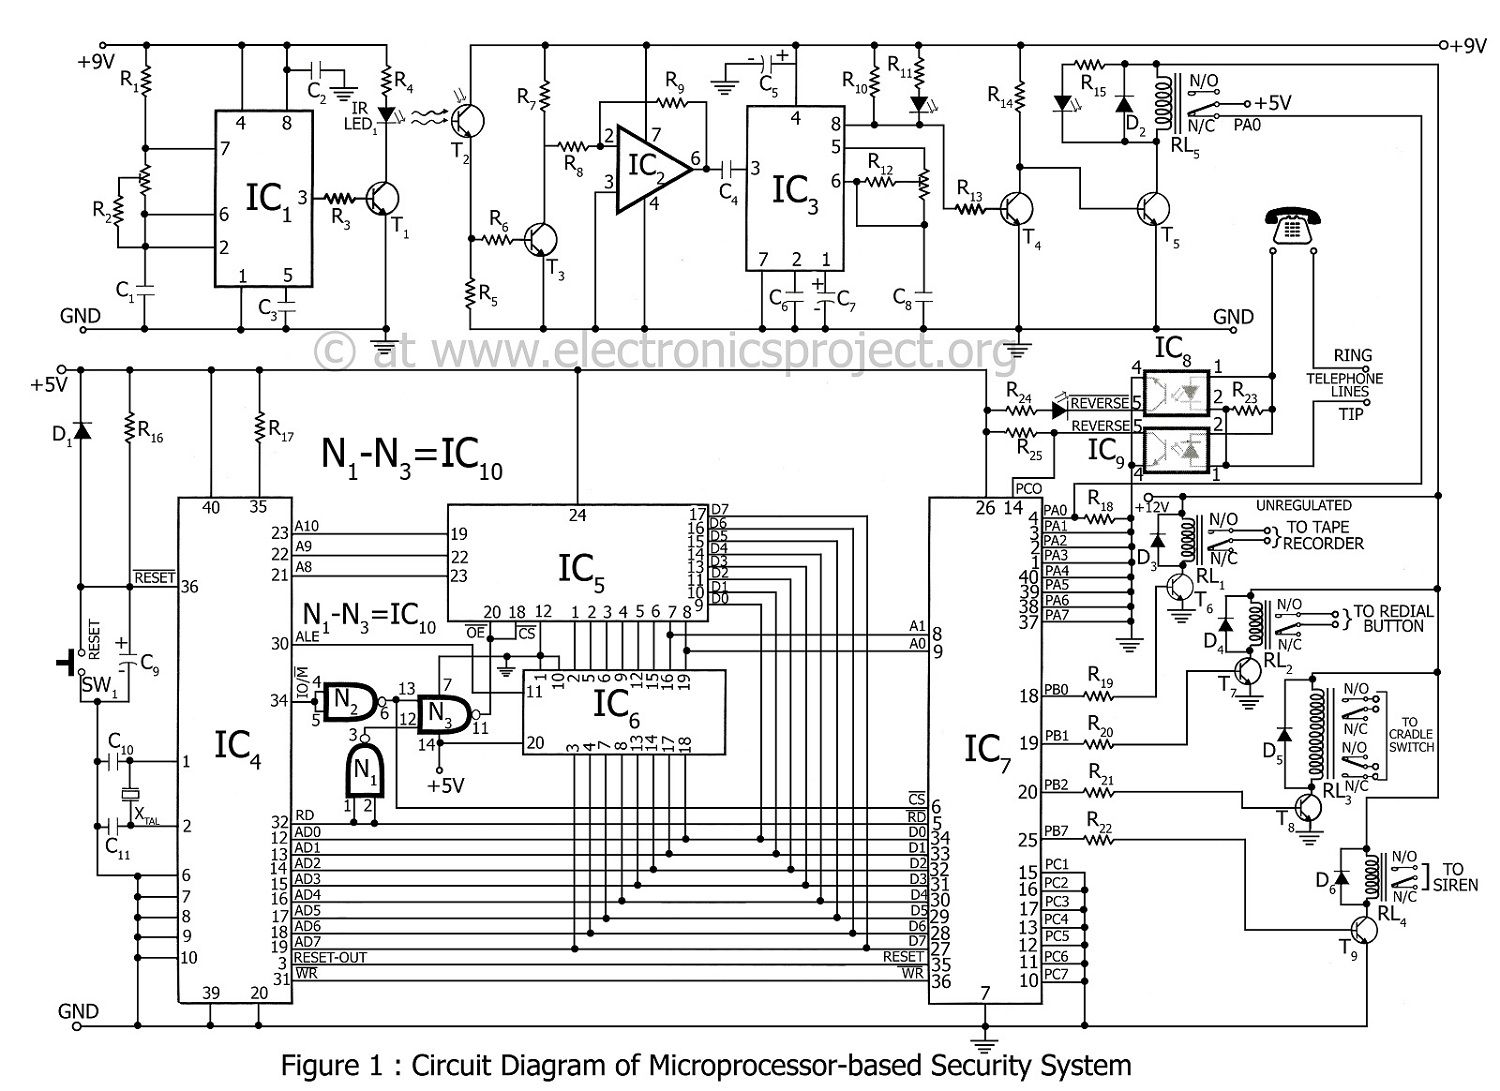 circuit diagram of microprocessor based security system